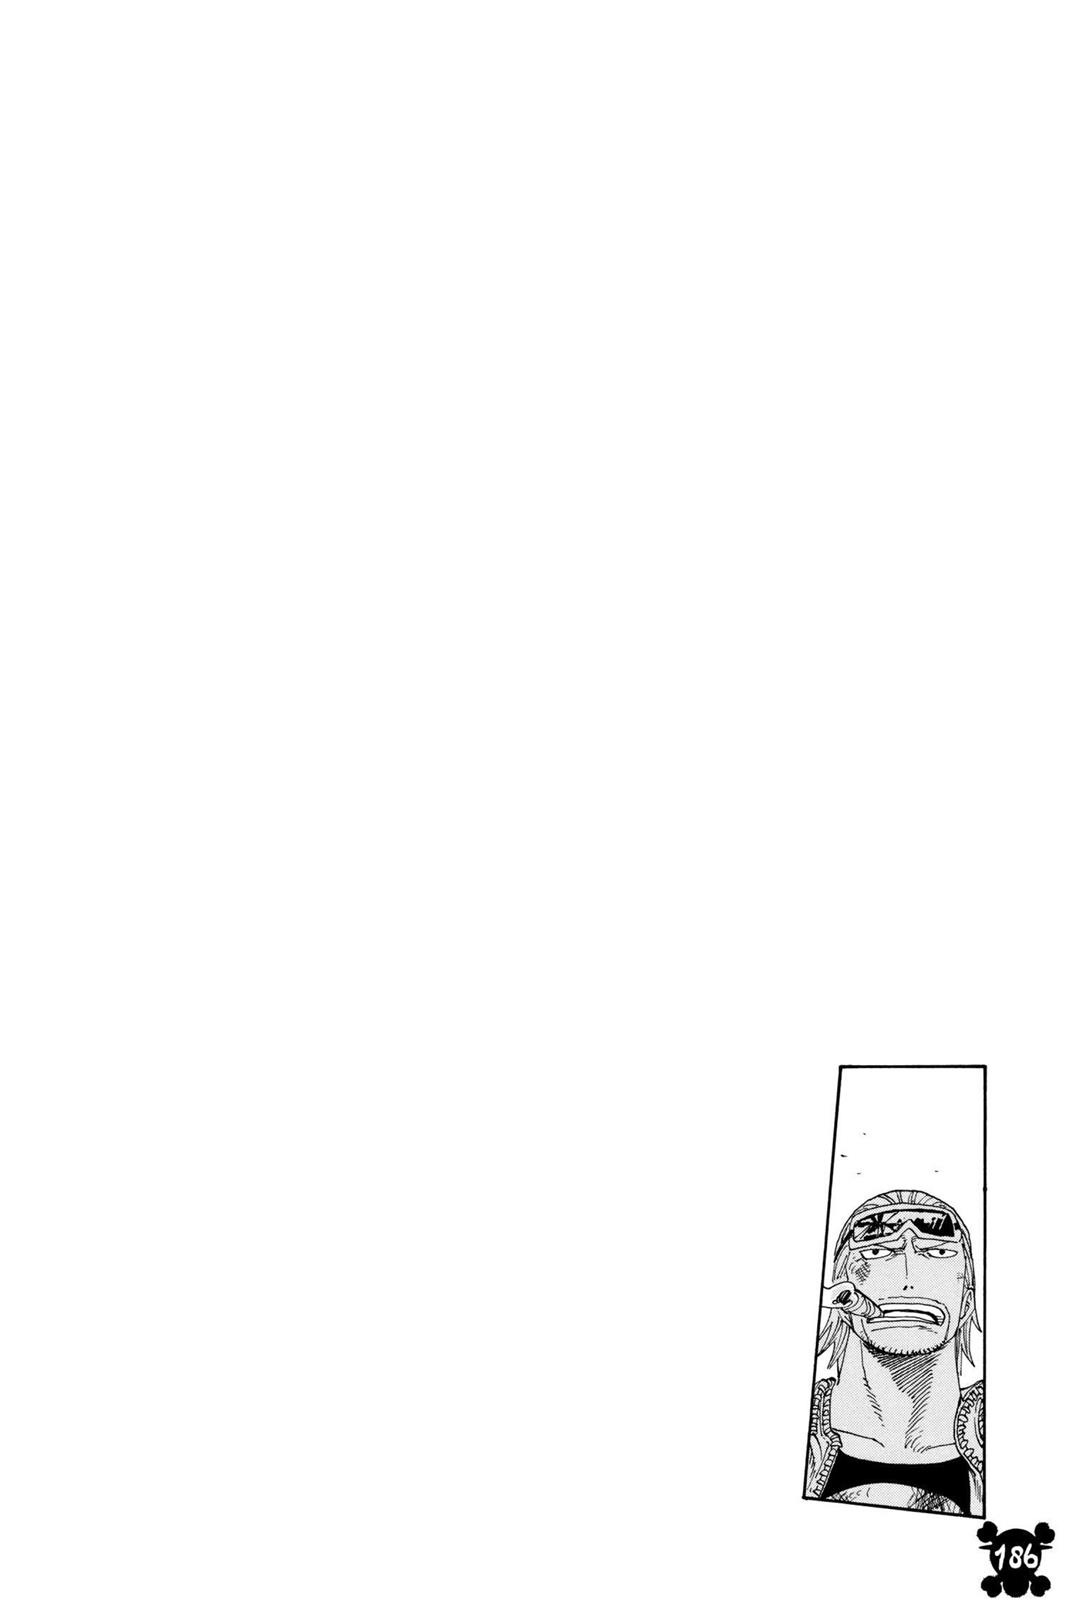 One Piece, Chapter 366 image 020